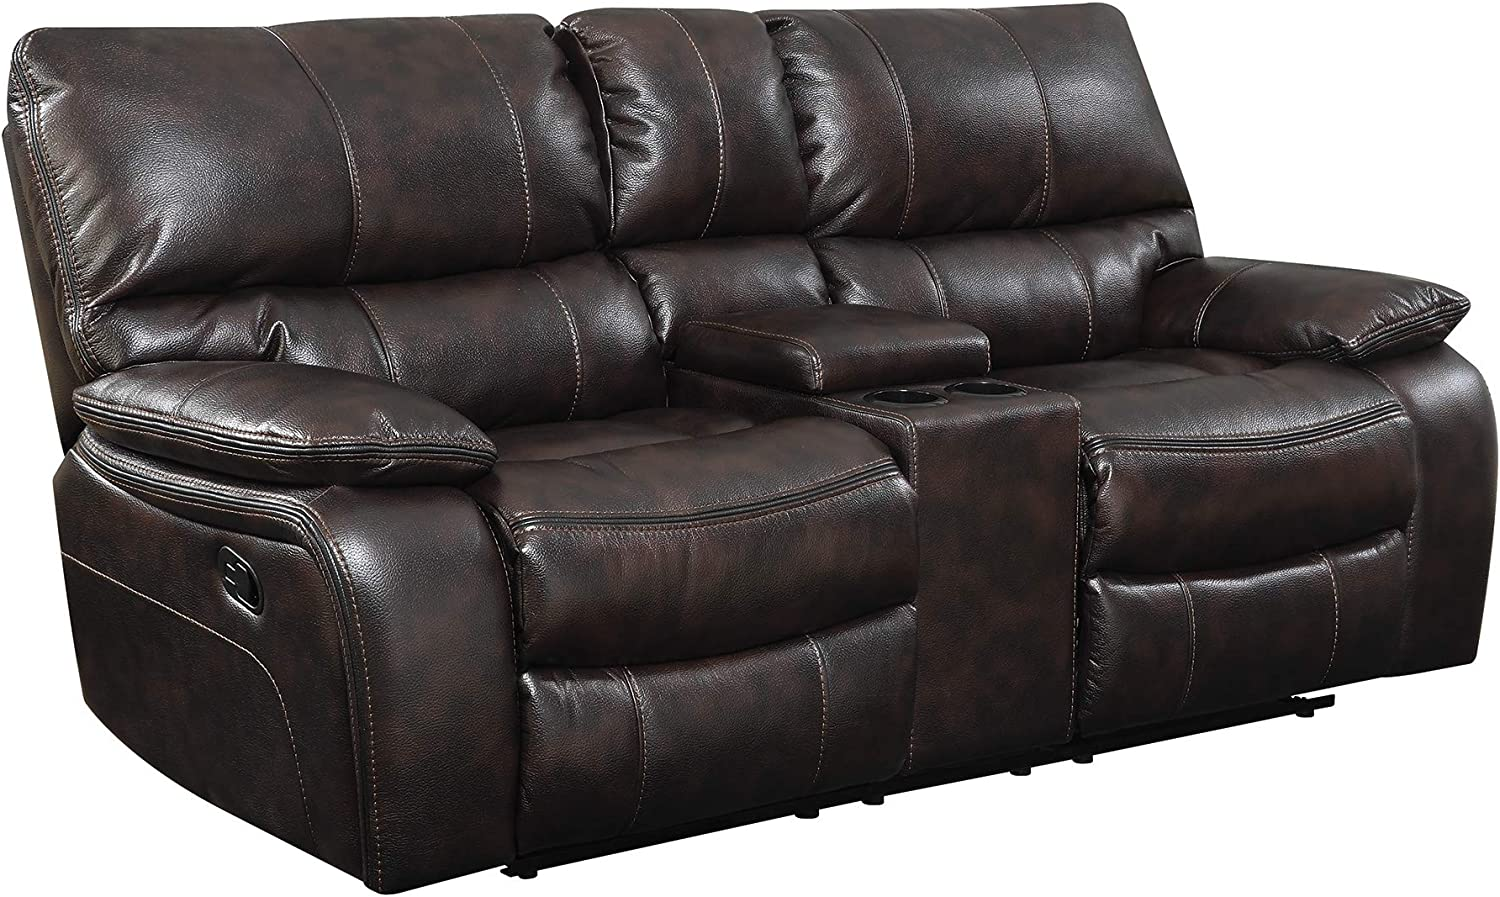 leather reclining loveseat with cup holders